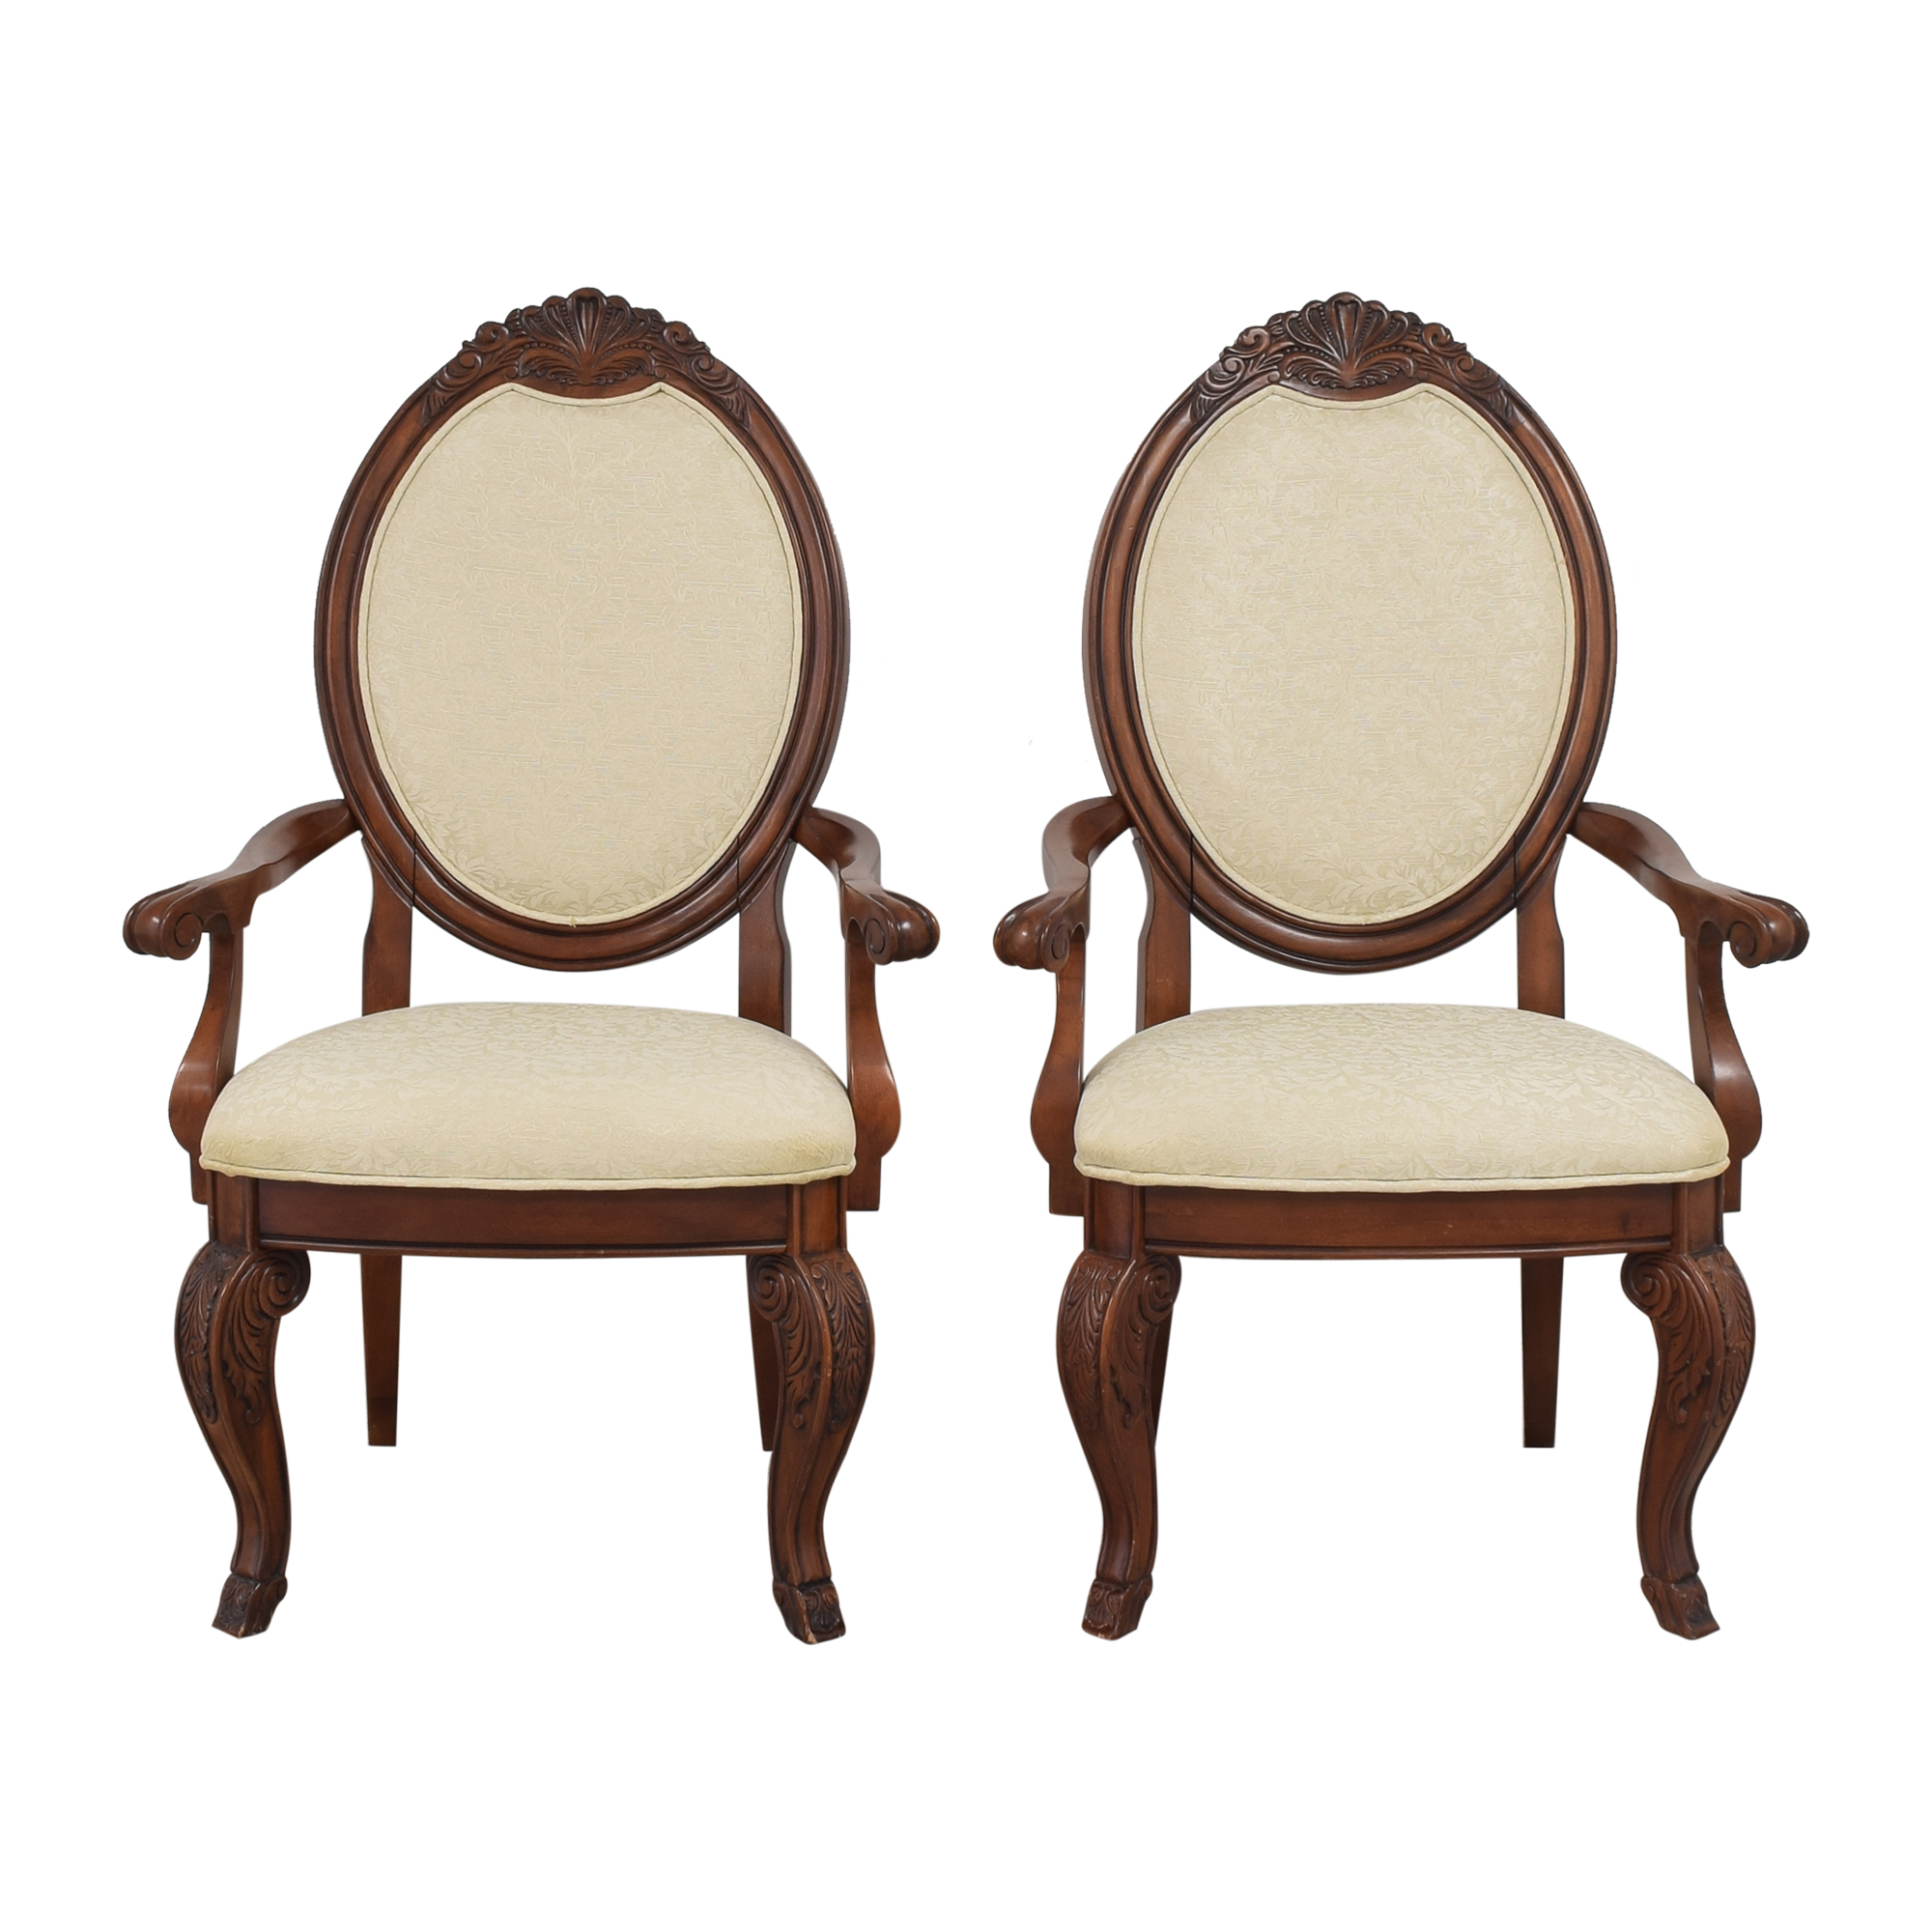 shop Raymour & Flanigan Oval Back Dining Arm Chairs Raymour & Flanigan Chairs